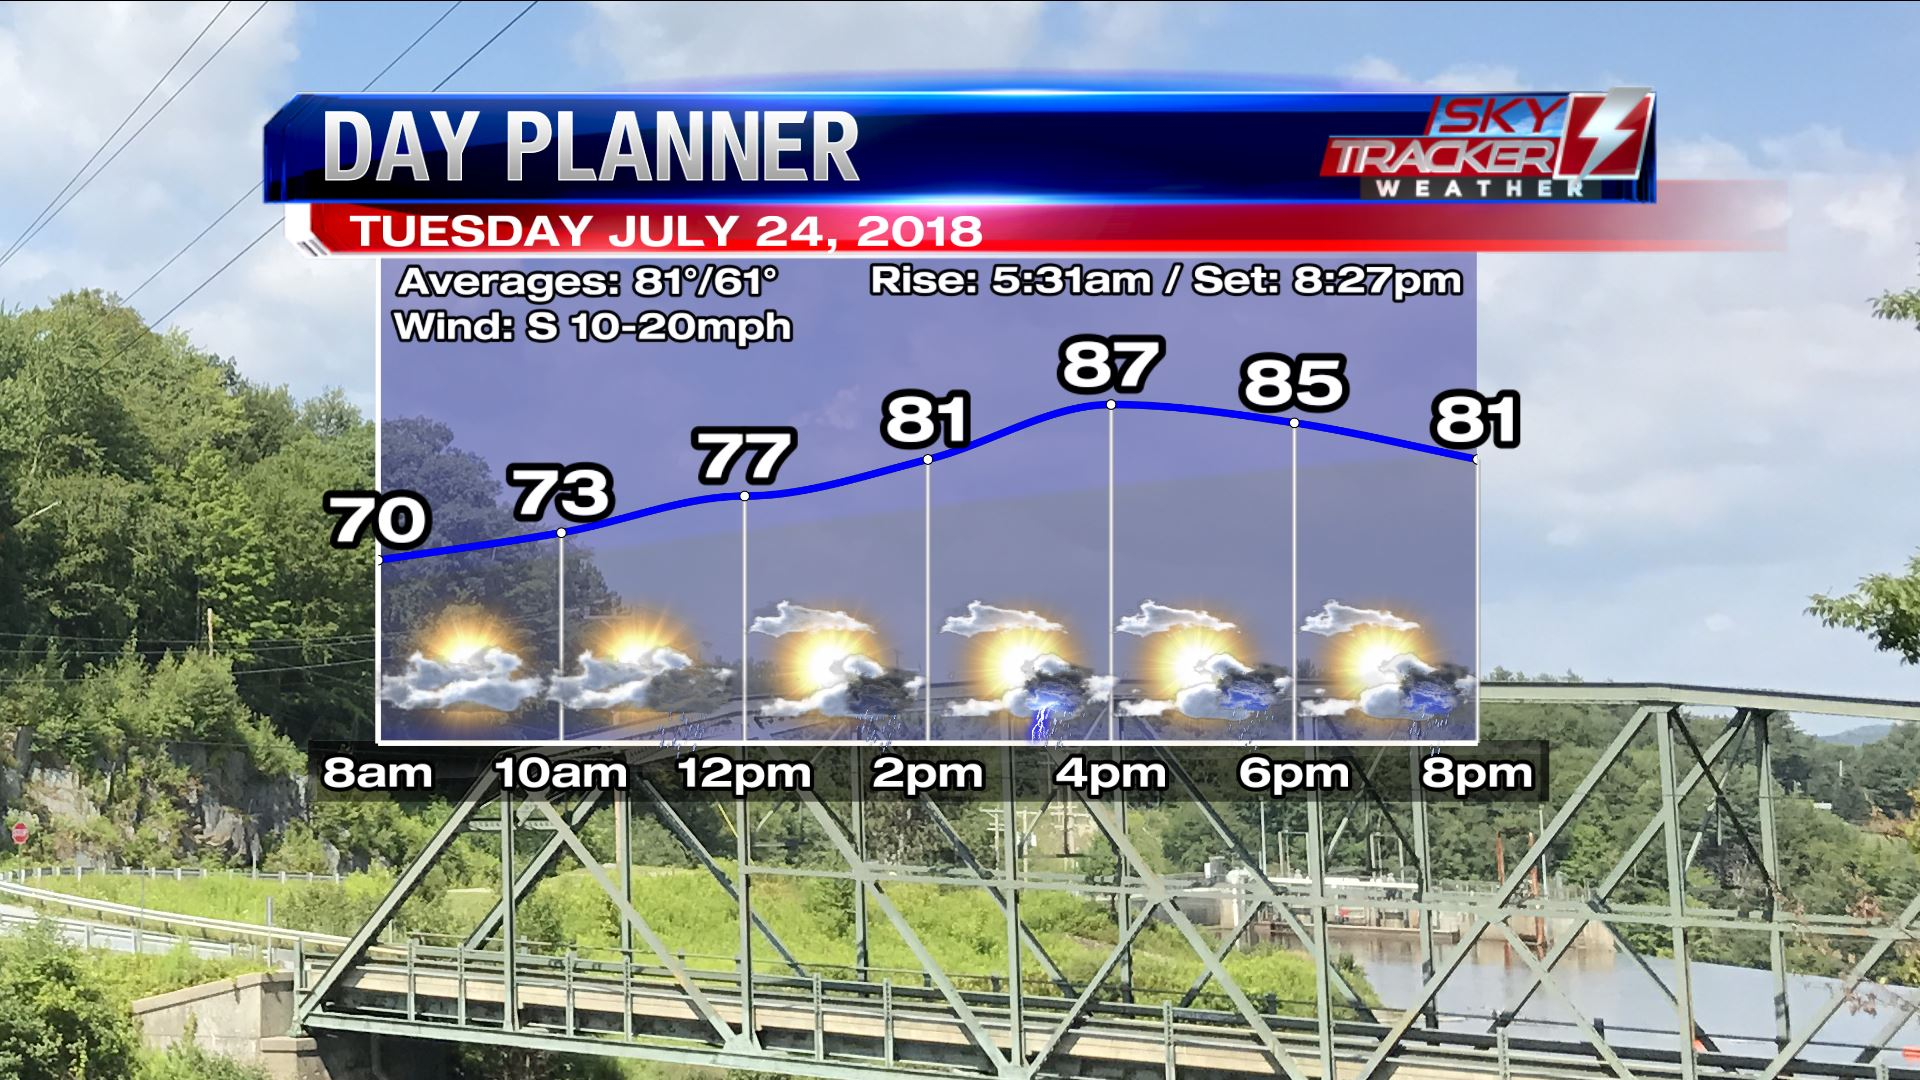 Planner for Tuesday July 24 2018